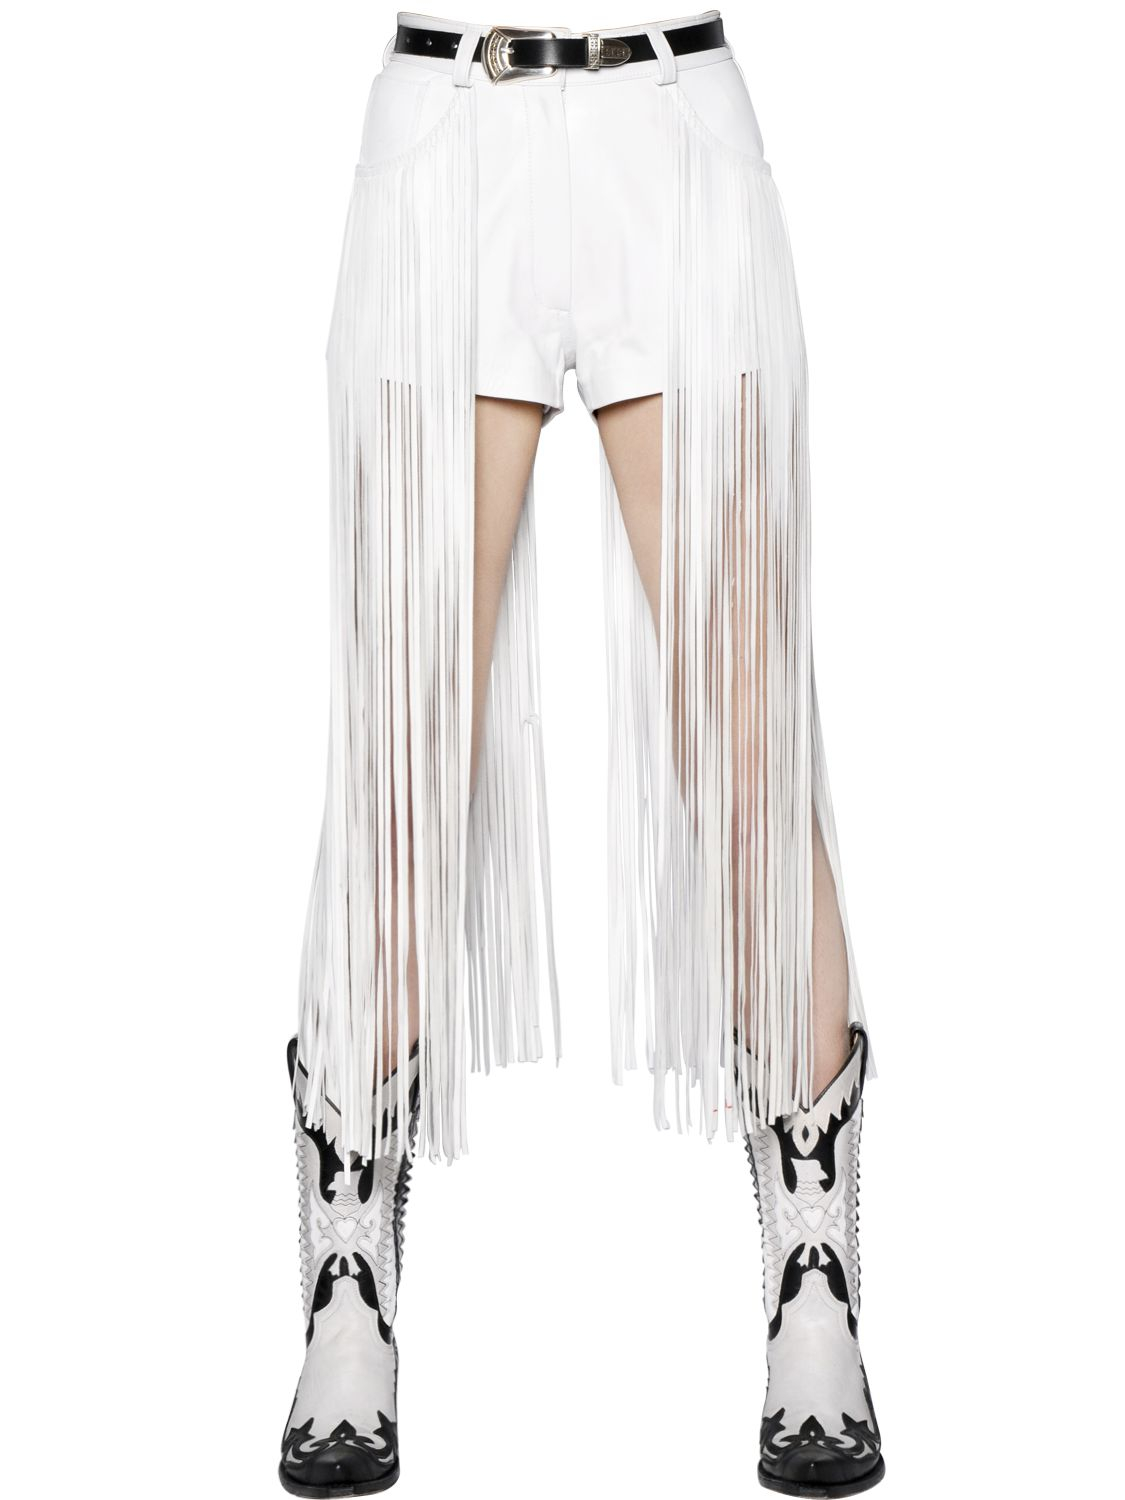 Maria escoté High Waisted Fringed Leather Shorts in White | Lyst